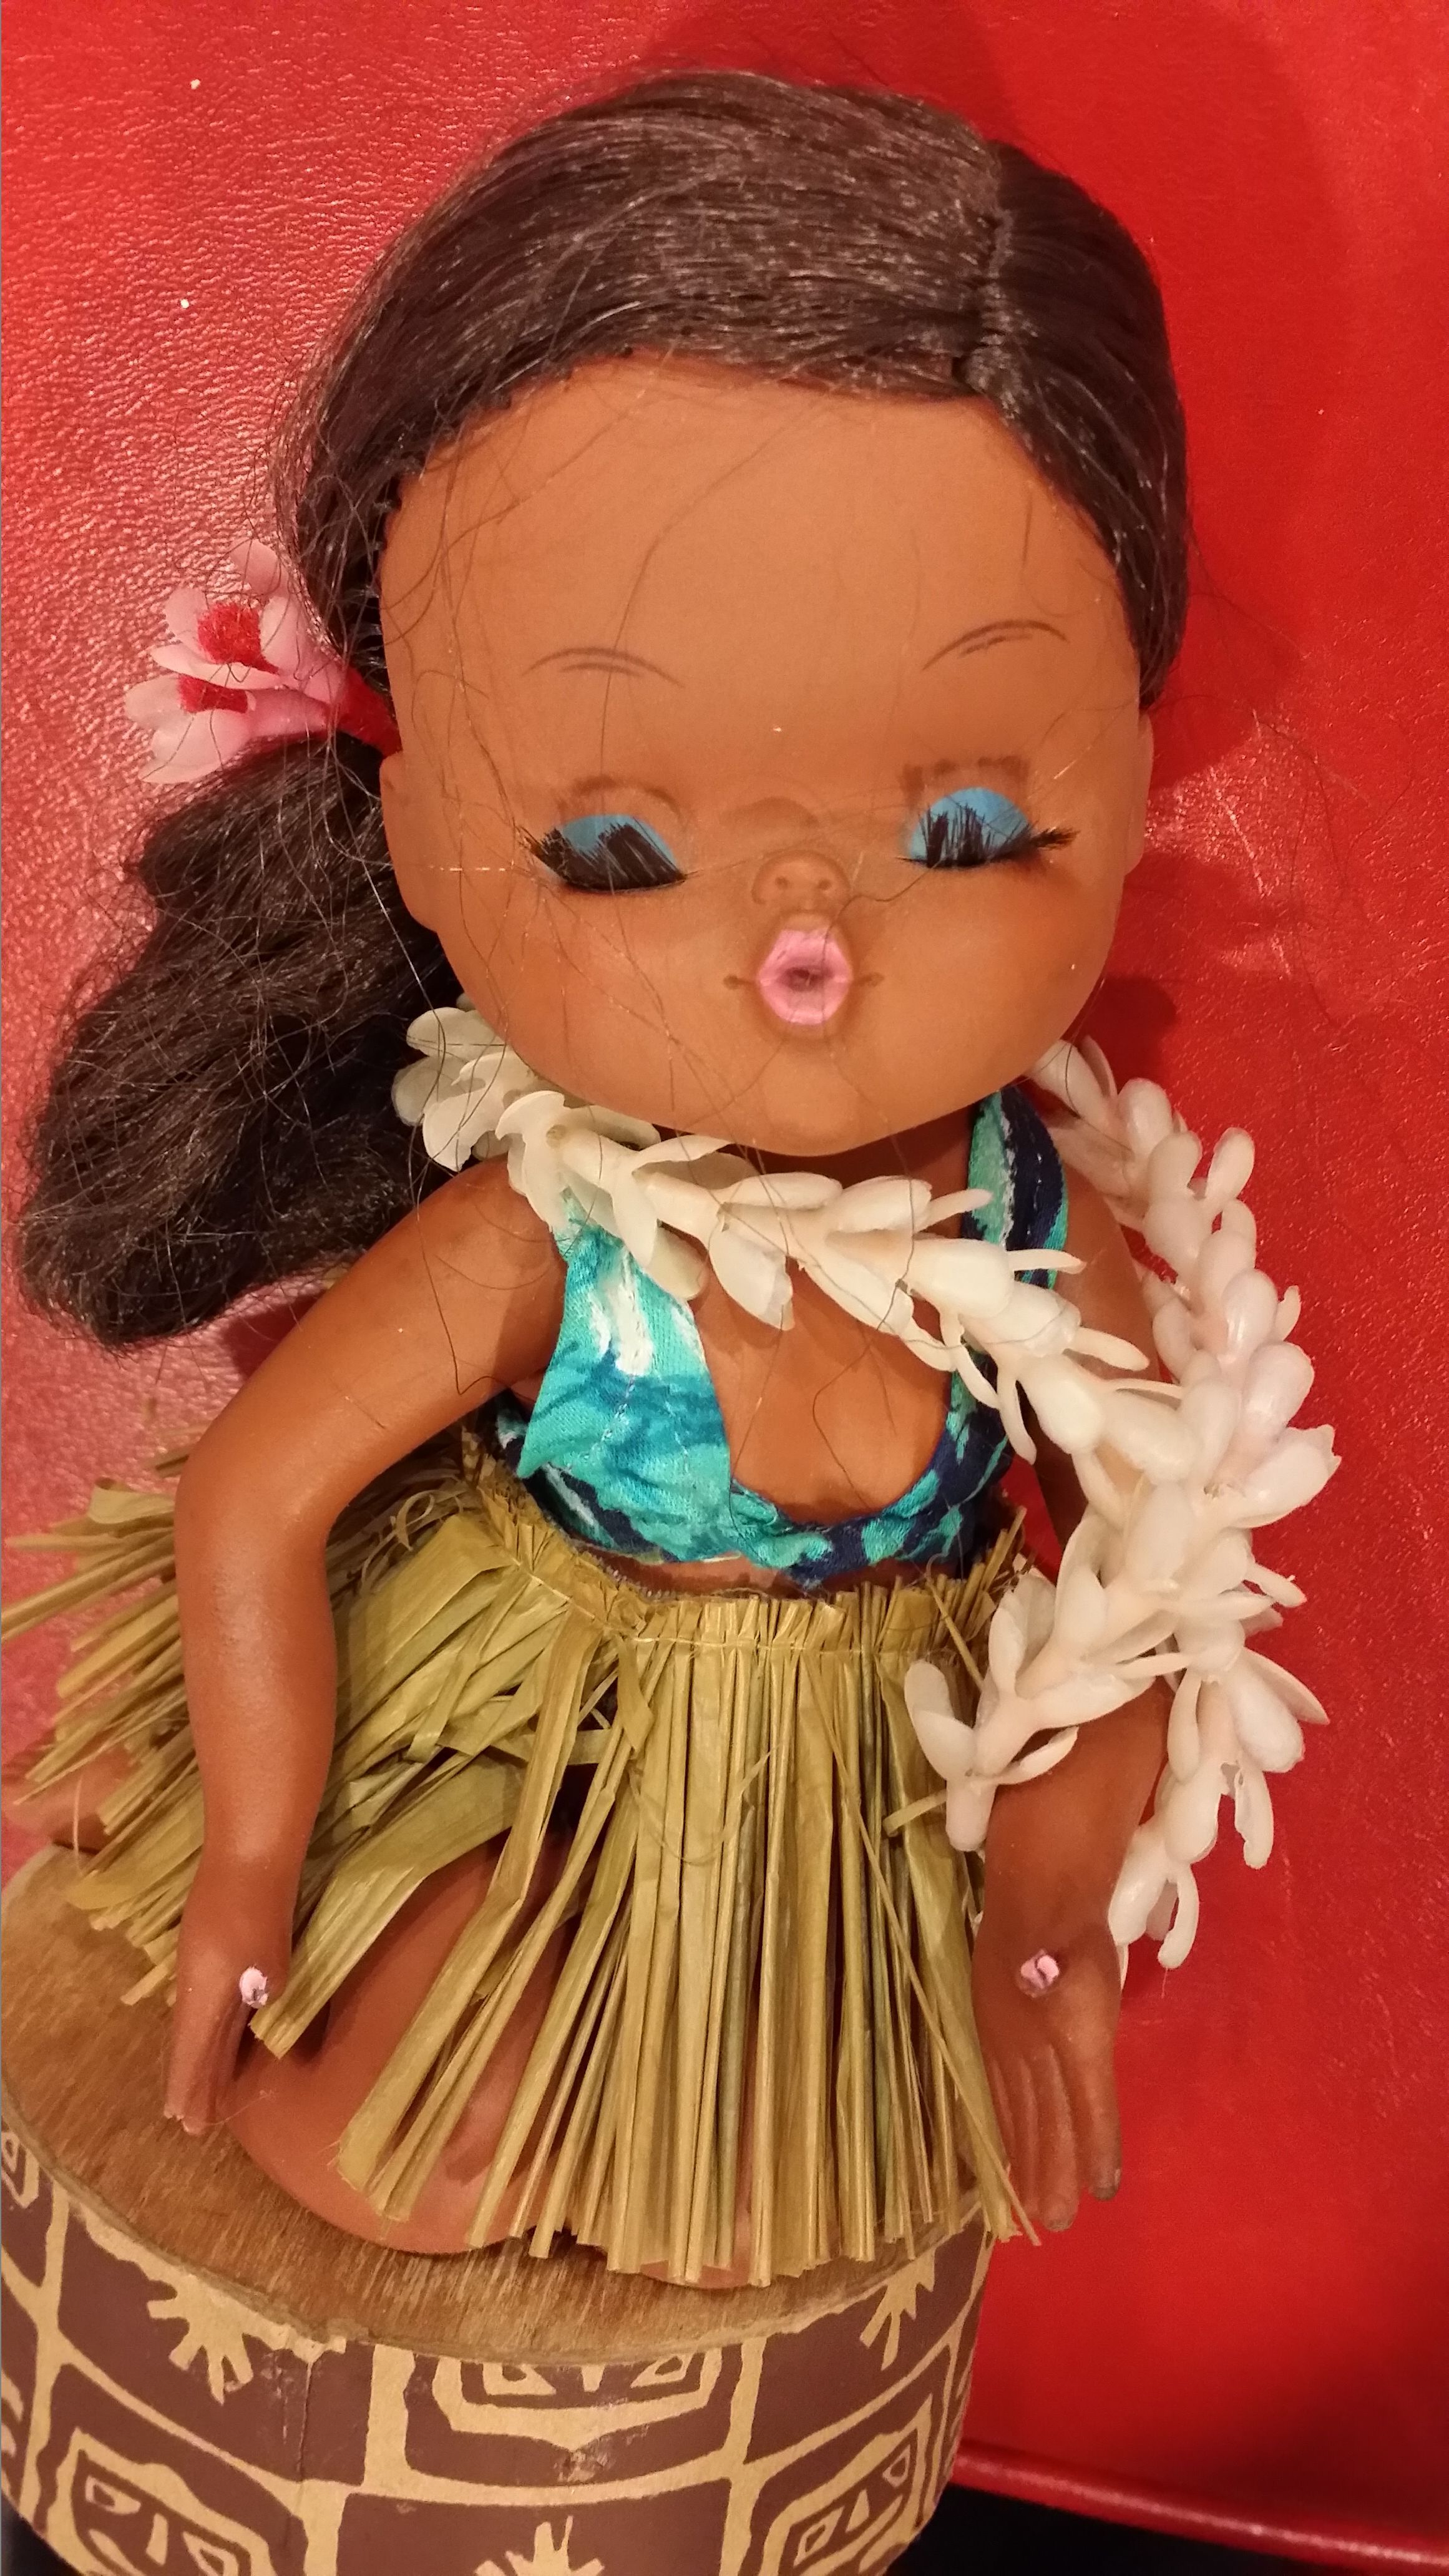 Hula Maiden Revolving Music Box LITTLE BROWN GAL 1977 Lanakila crafts Hawaii with tags kitschy doll souvenir